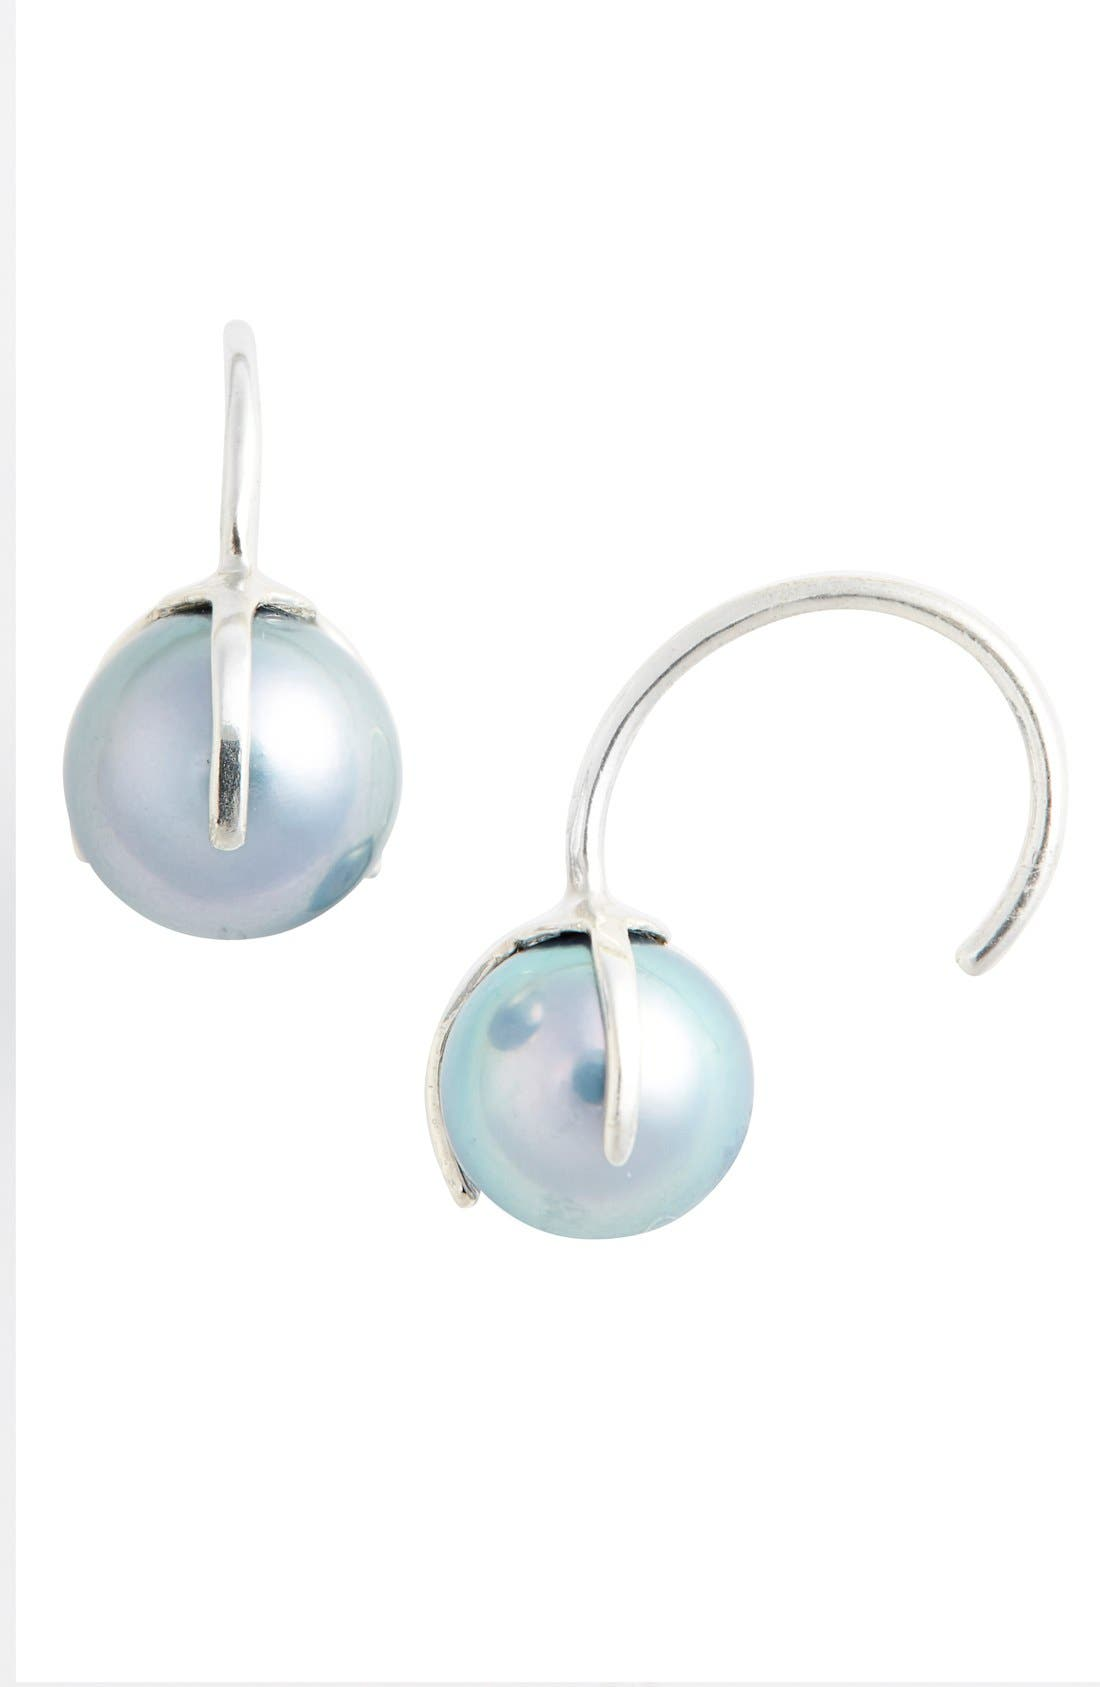 JULIEN DAVID Cultured Pearl Cuff Earrings